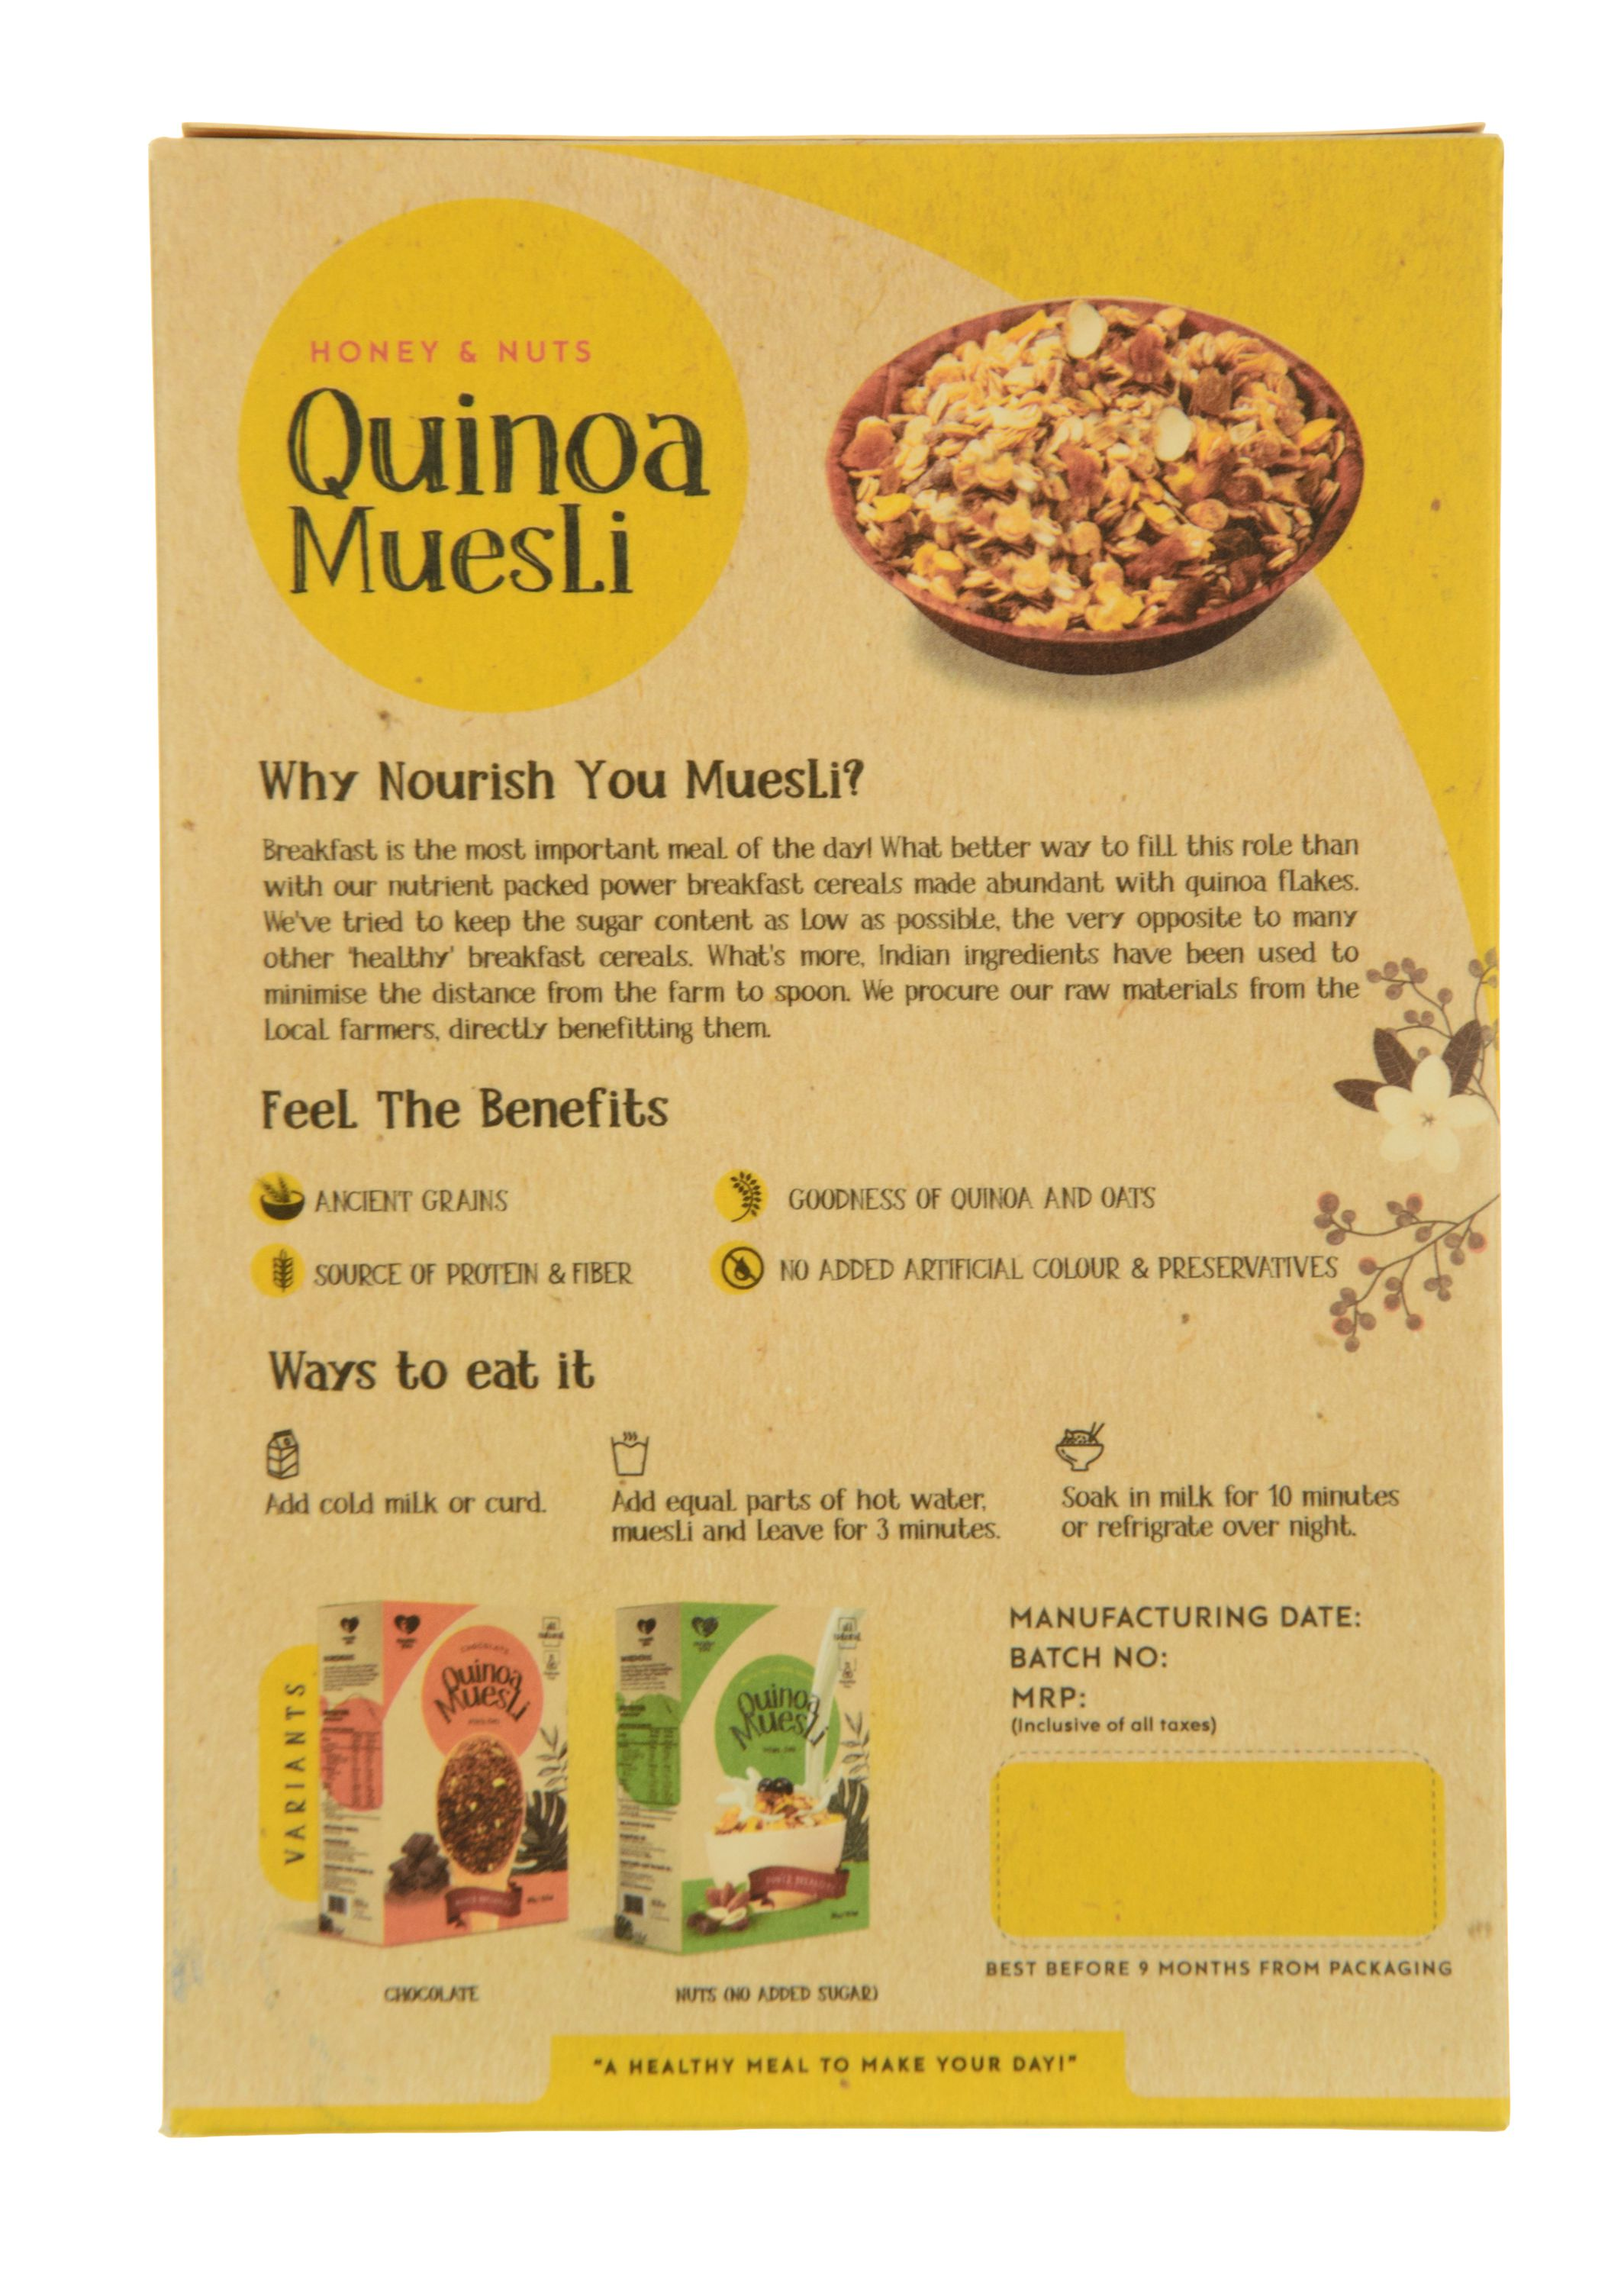 The benefits and harms of muesli: relevant information for anyone who thinks about health 10